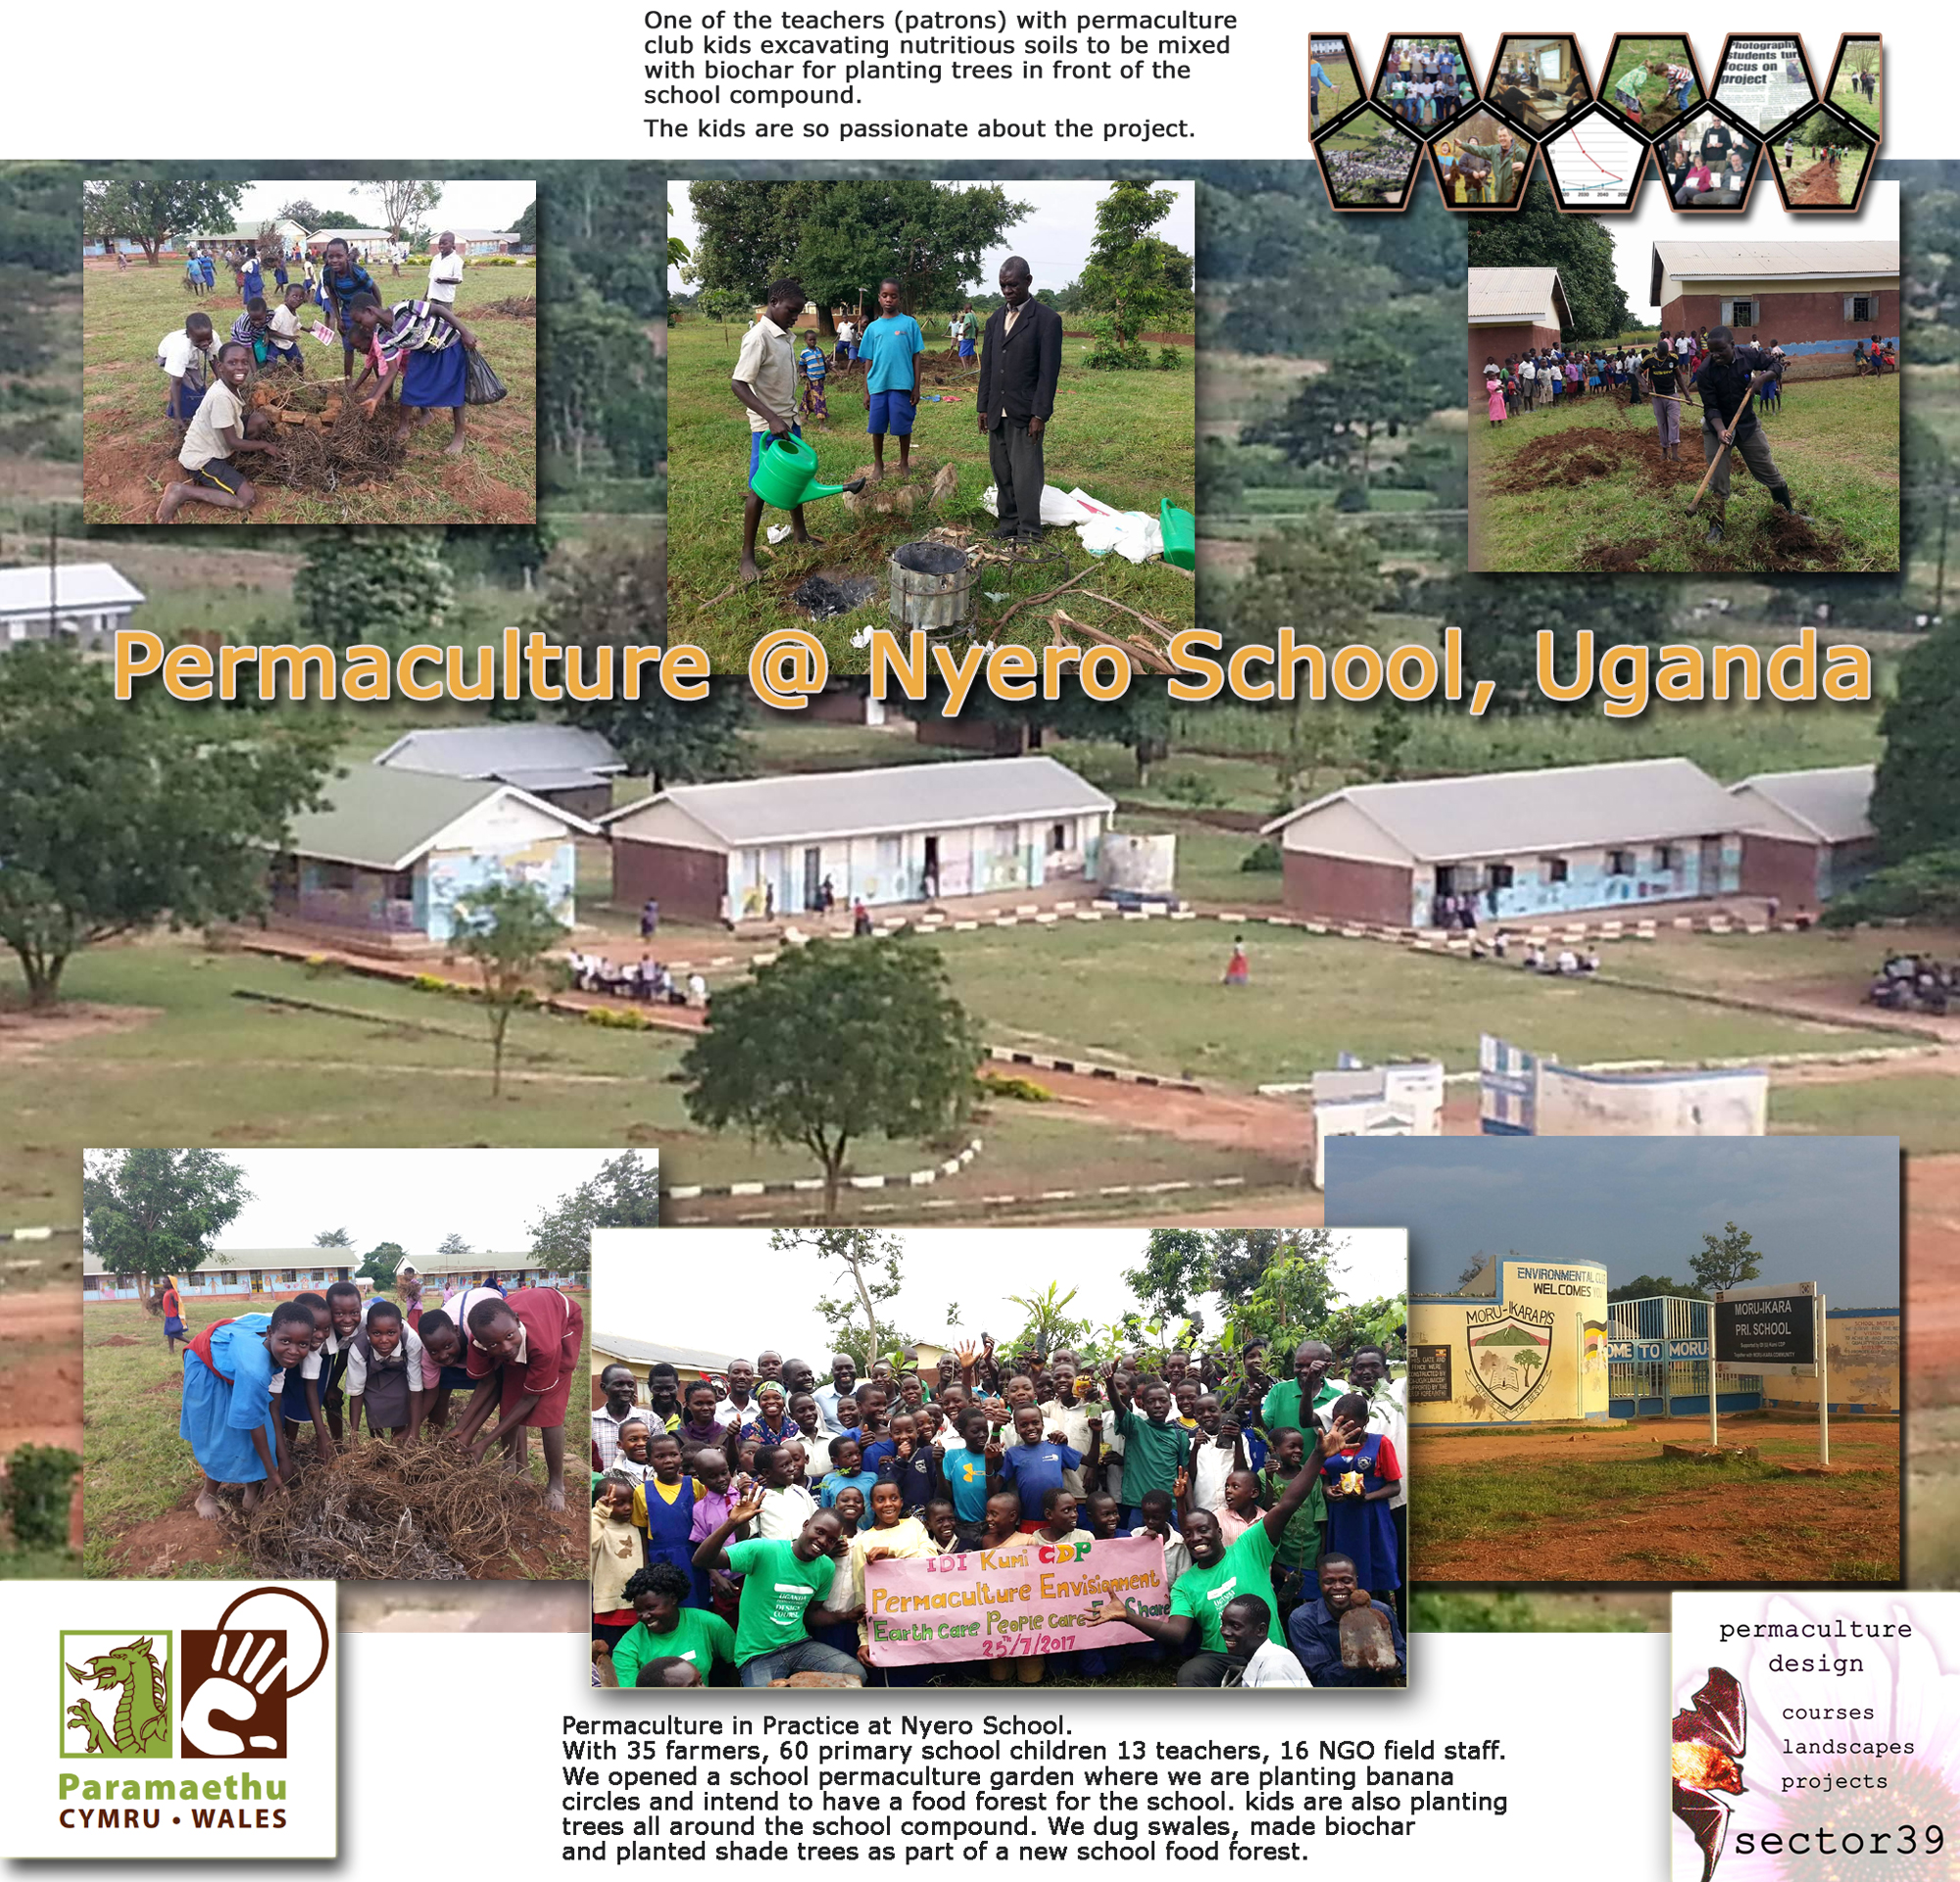 permaculture at Nyero